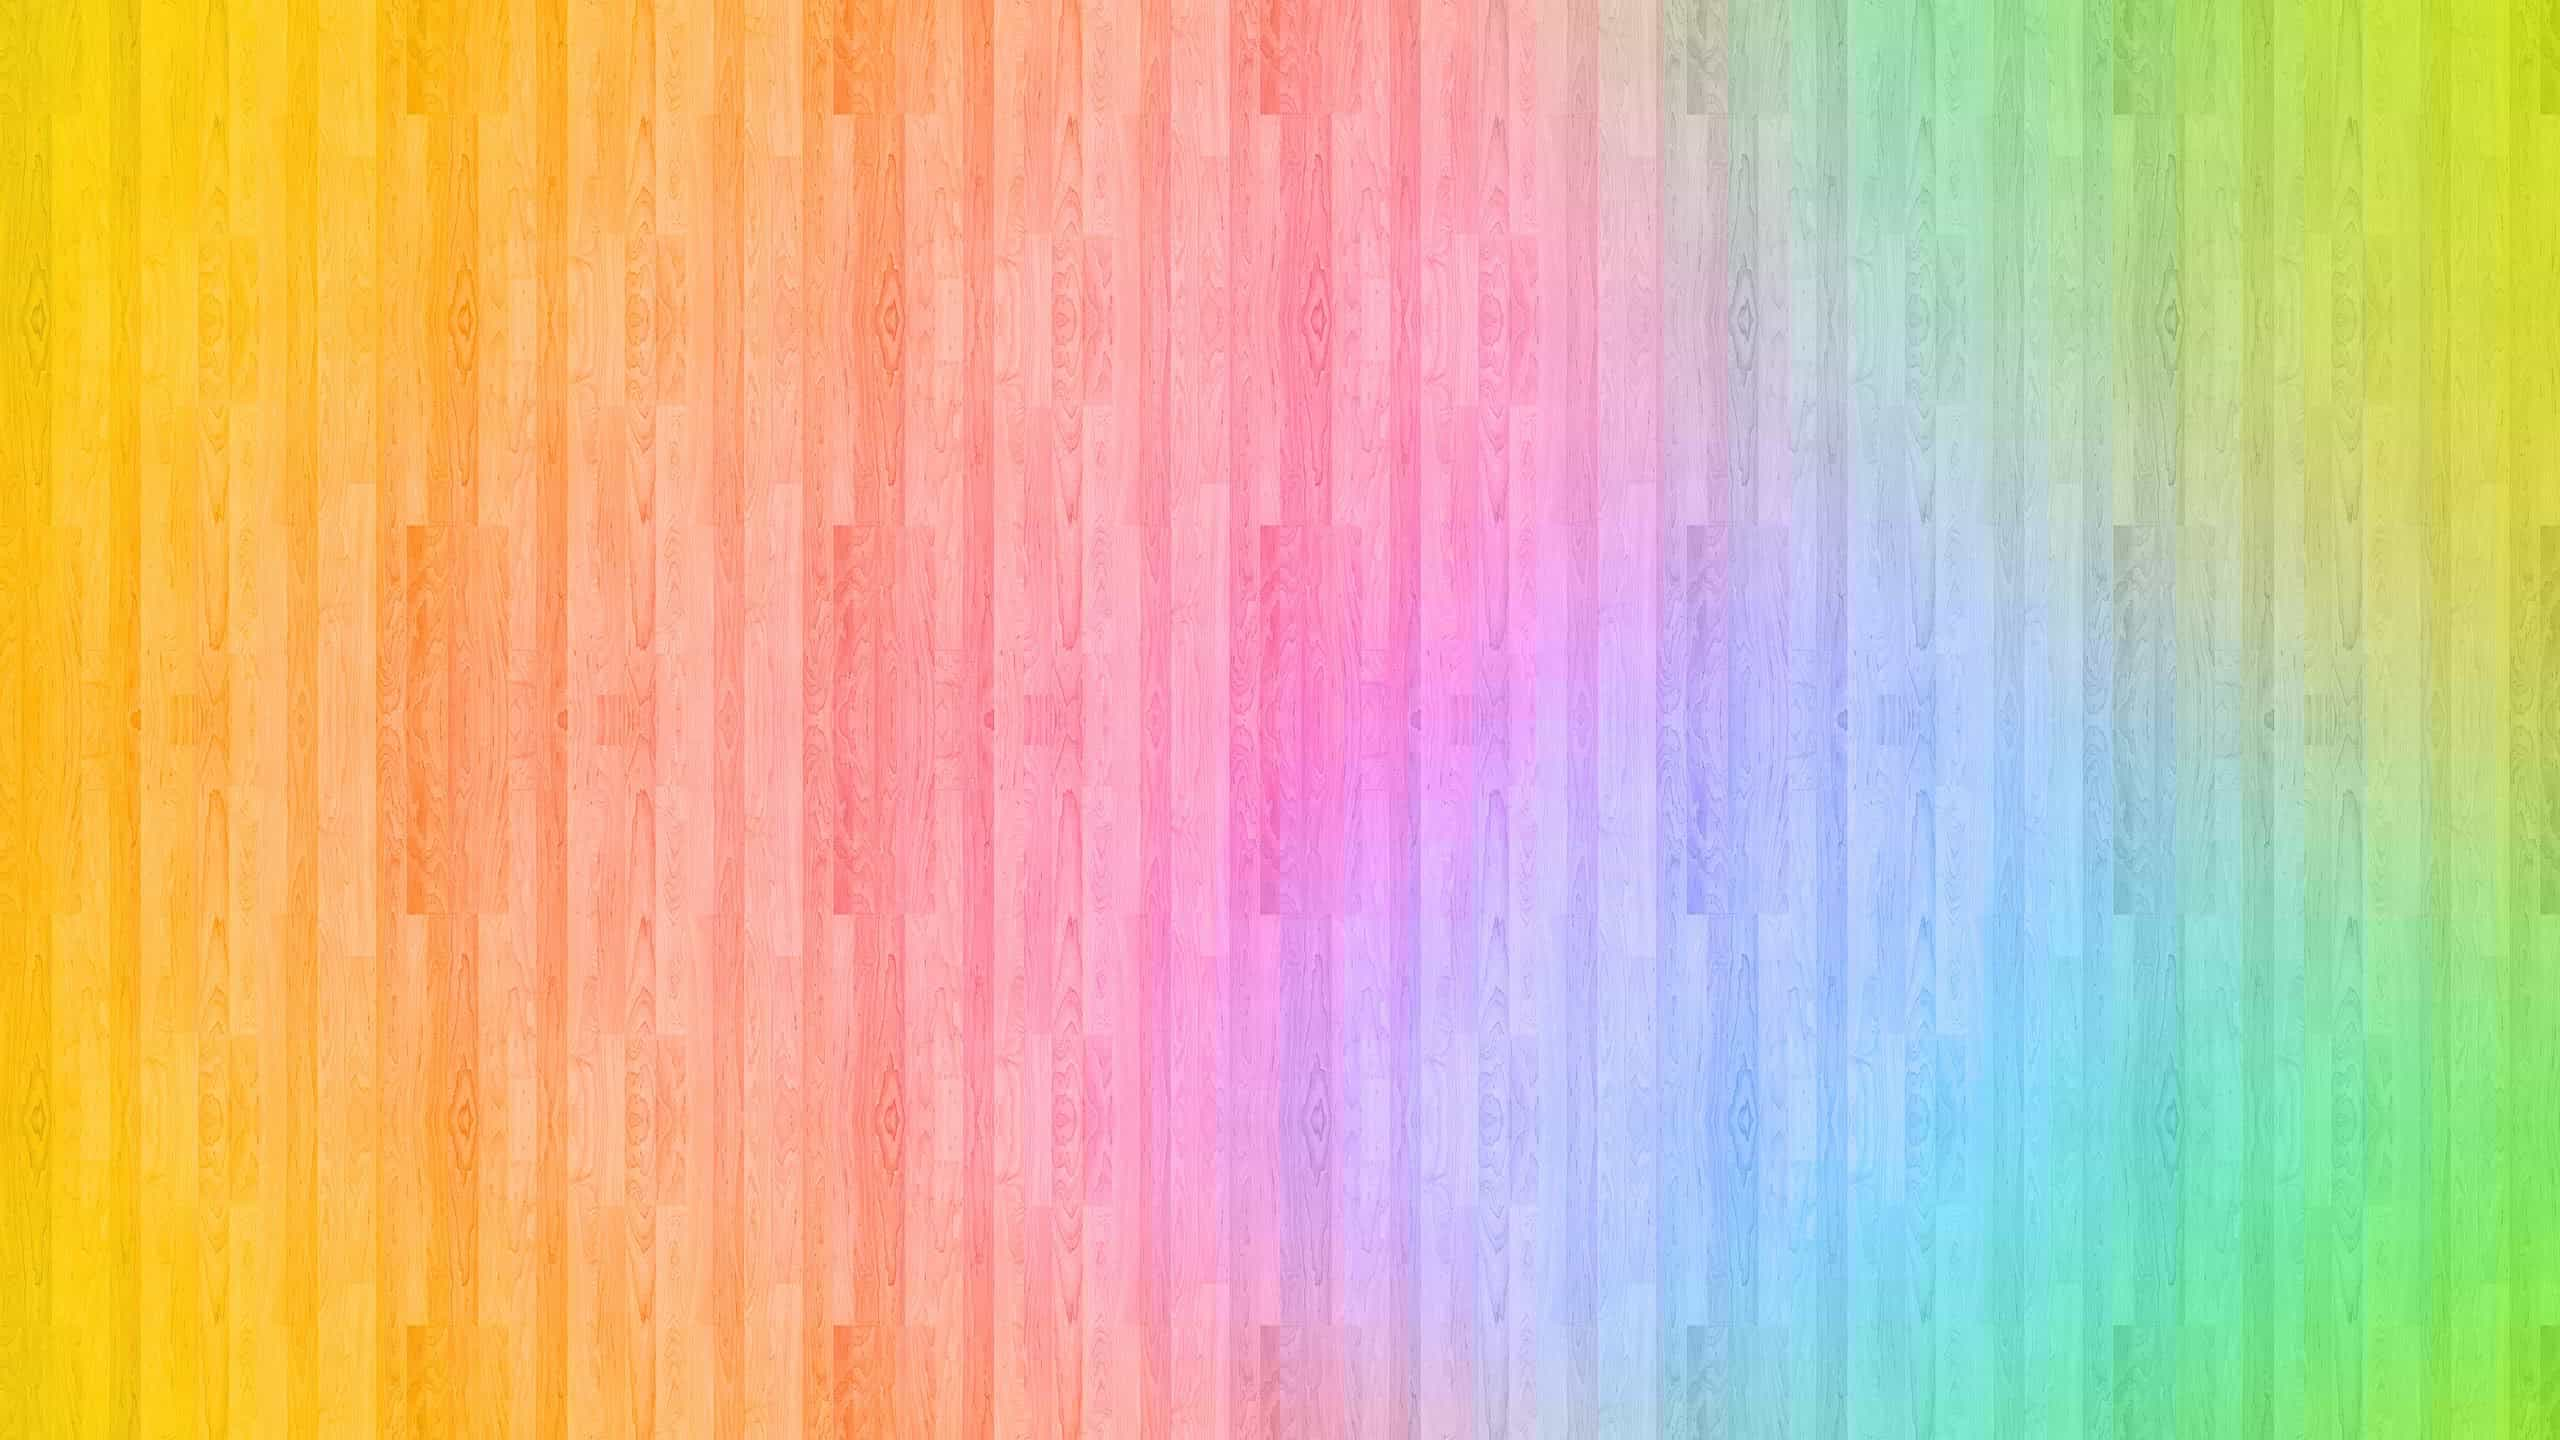 Hd Backgrounds Download >> Rainbow Wood WQHD 1440p Wallpaper | Pixelz